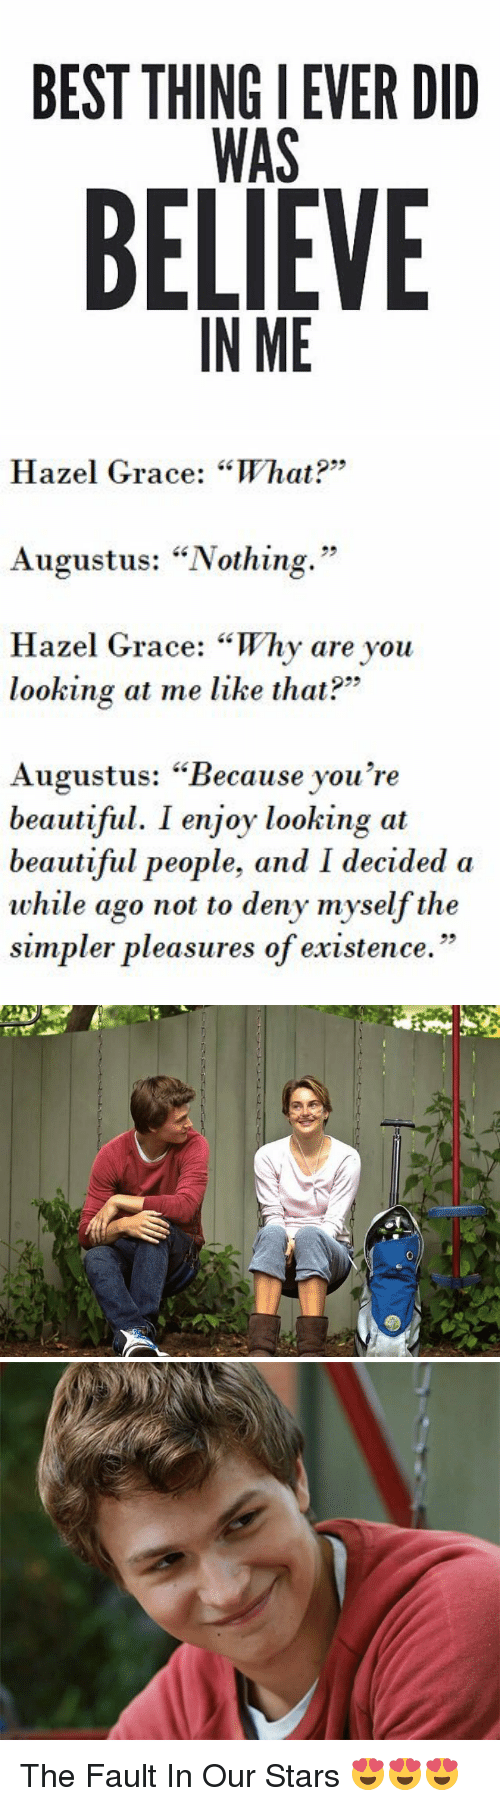 """Why Are You Looking At Me: BEST THINGIEVER DID  WAS  BELIEVE  IN ME   Hazel Grace: """"What?  Augustus: """"Nothing.""""  Hazel Grace: """"Why are you  looking at me like that?""""  Augustus: """"Because you're  beautiful. I enjoy looking at  beautiful people, and I decided a  while ago not to deny myself the  simpler pleasures of existence."""" The Fault In Our Stars 😍😍😍"""